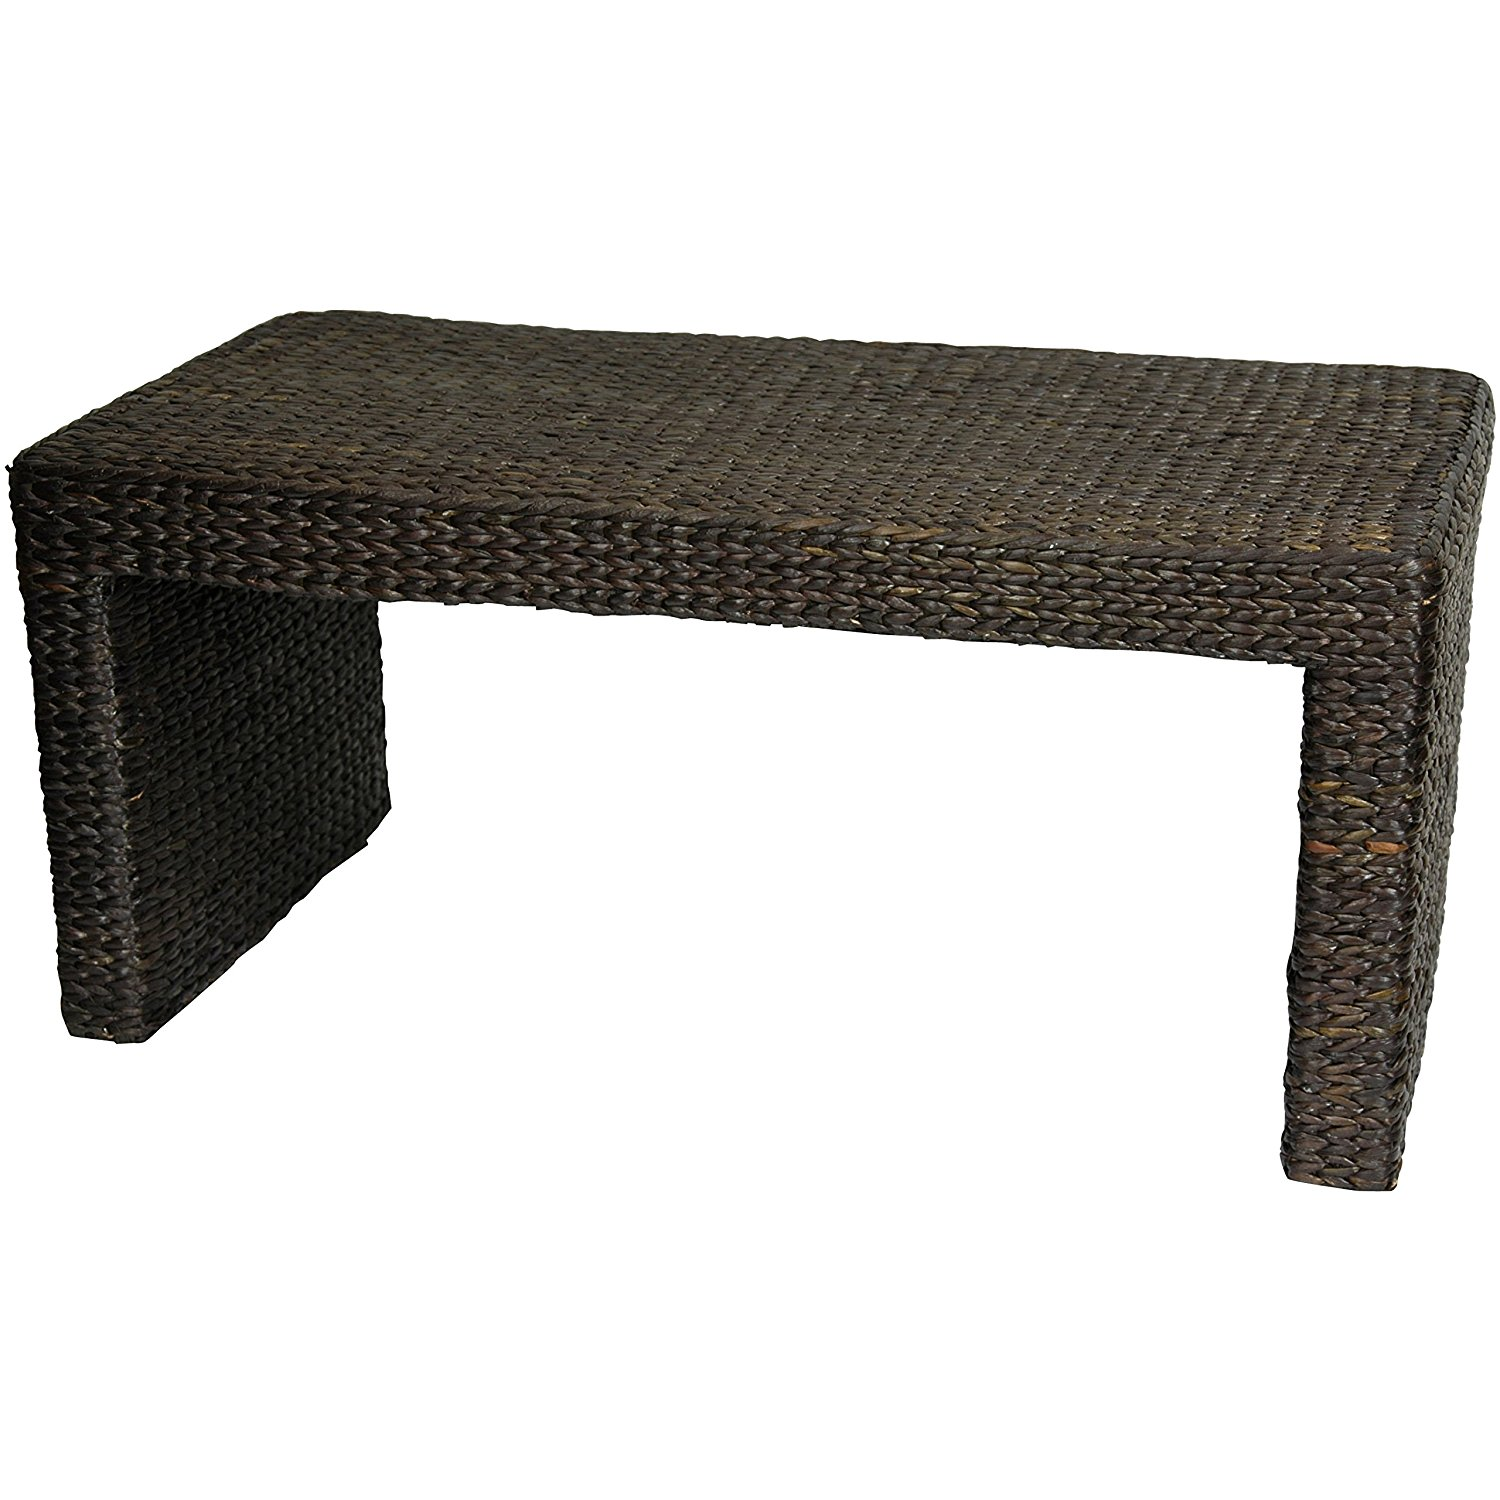 ese furniture find accent table get quotations oriental solid durable beautiful natural tro design inch woven water hyacinth rattan round outdoor cocktail tile small cherry coffee